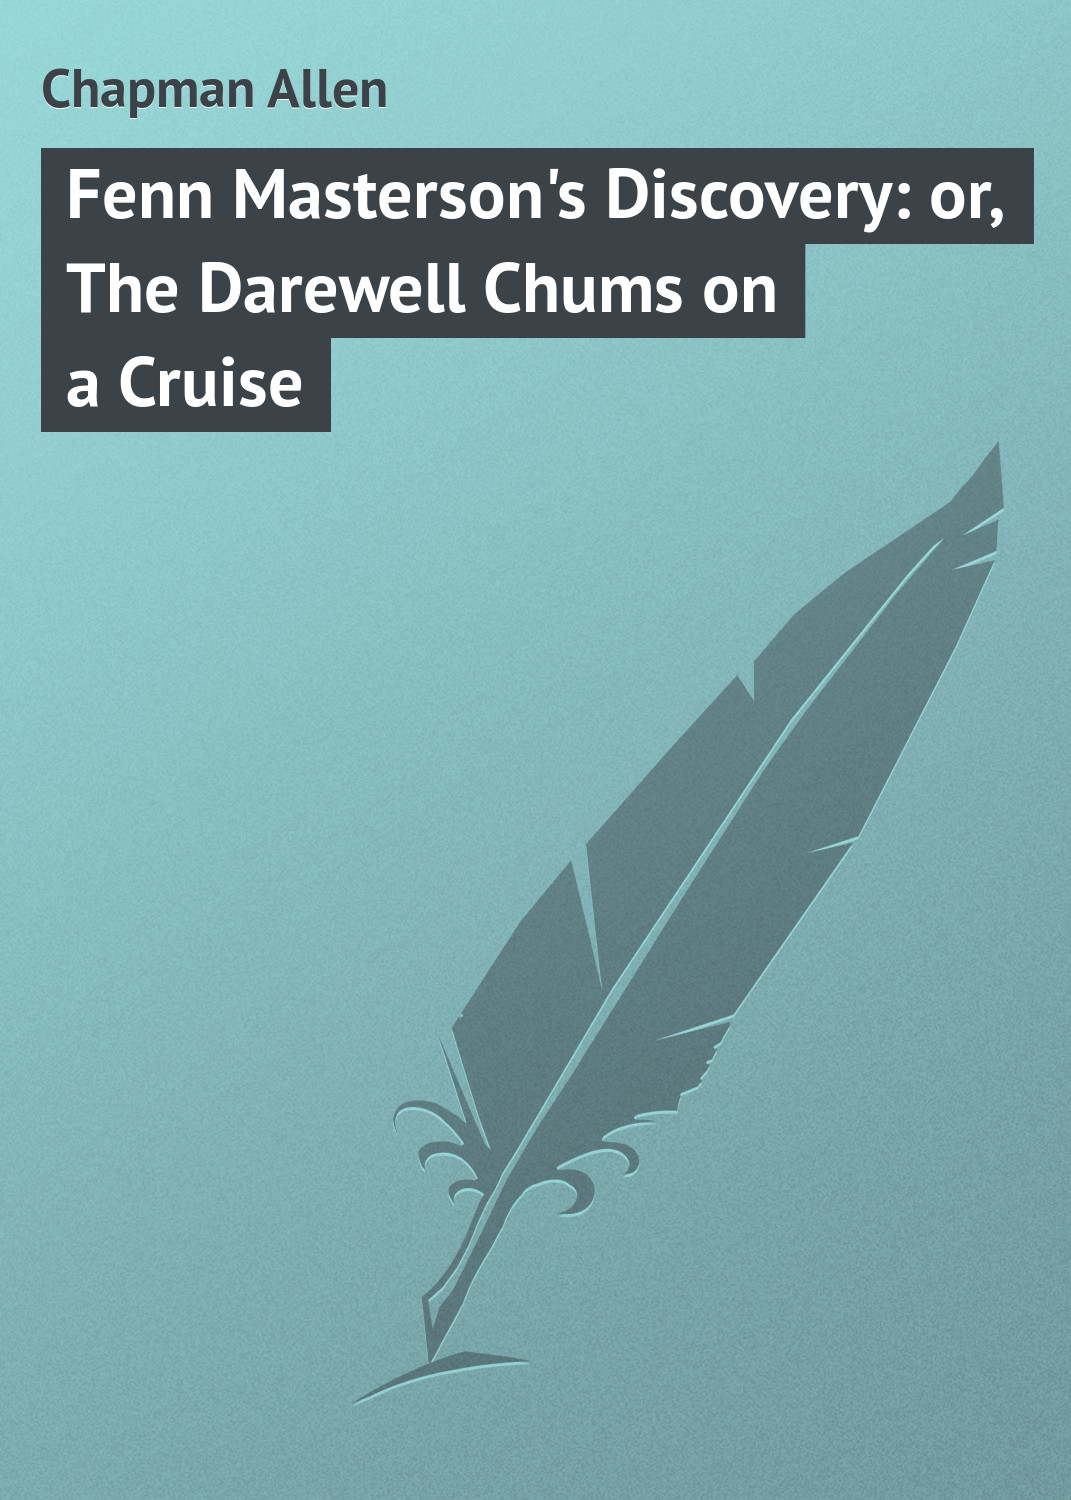 купить Chapman Allen Fenn Masterson's Discovery: or, The Darewell Chums on a Cruise по цене 0 рублей